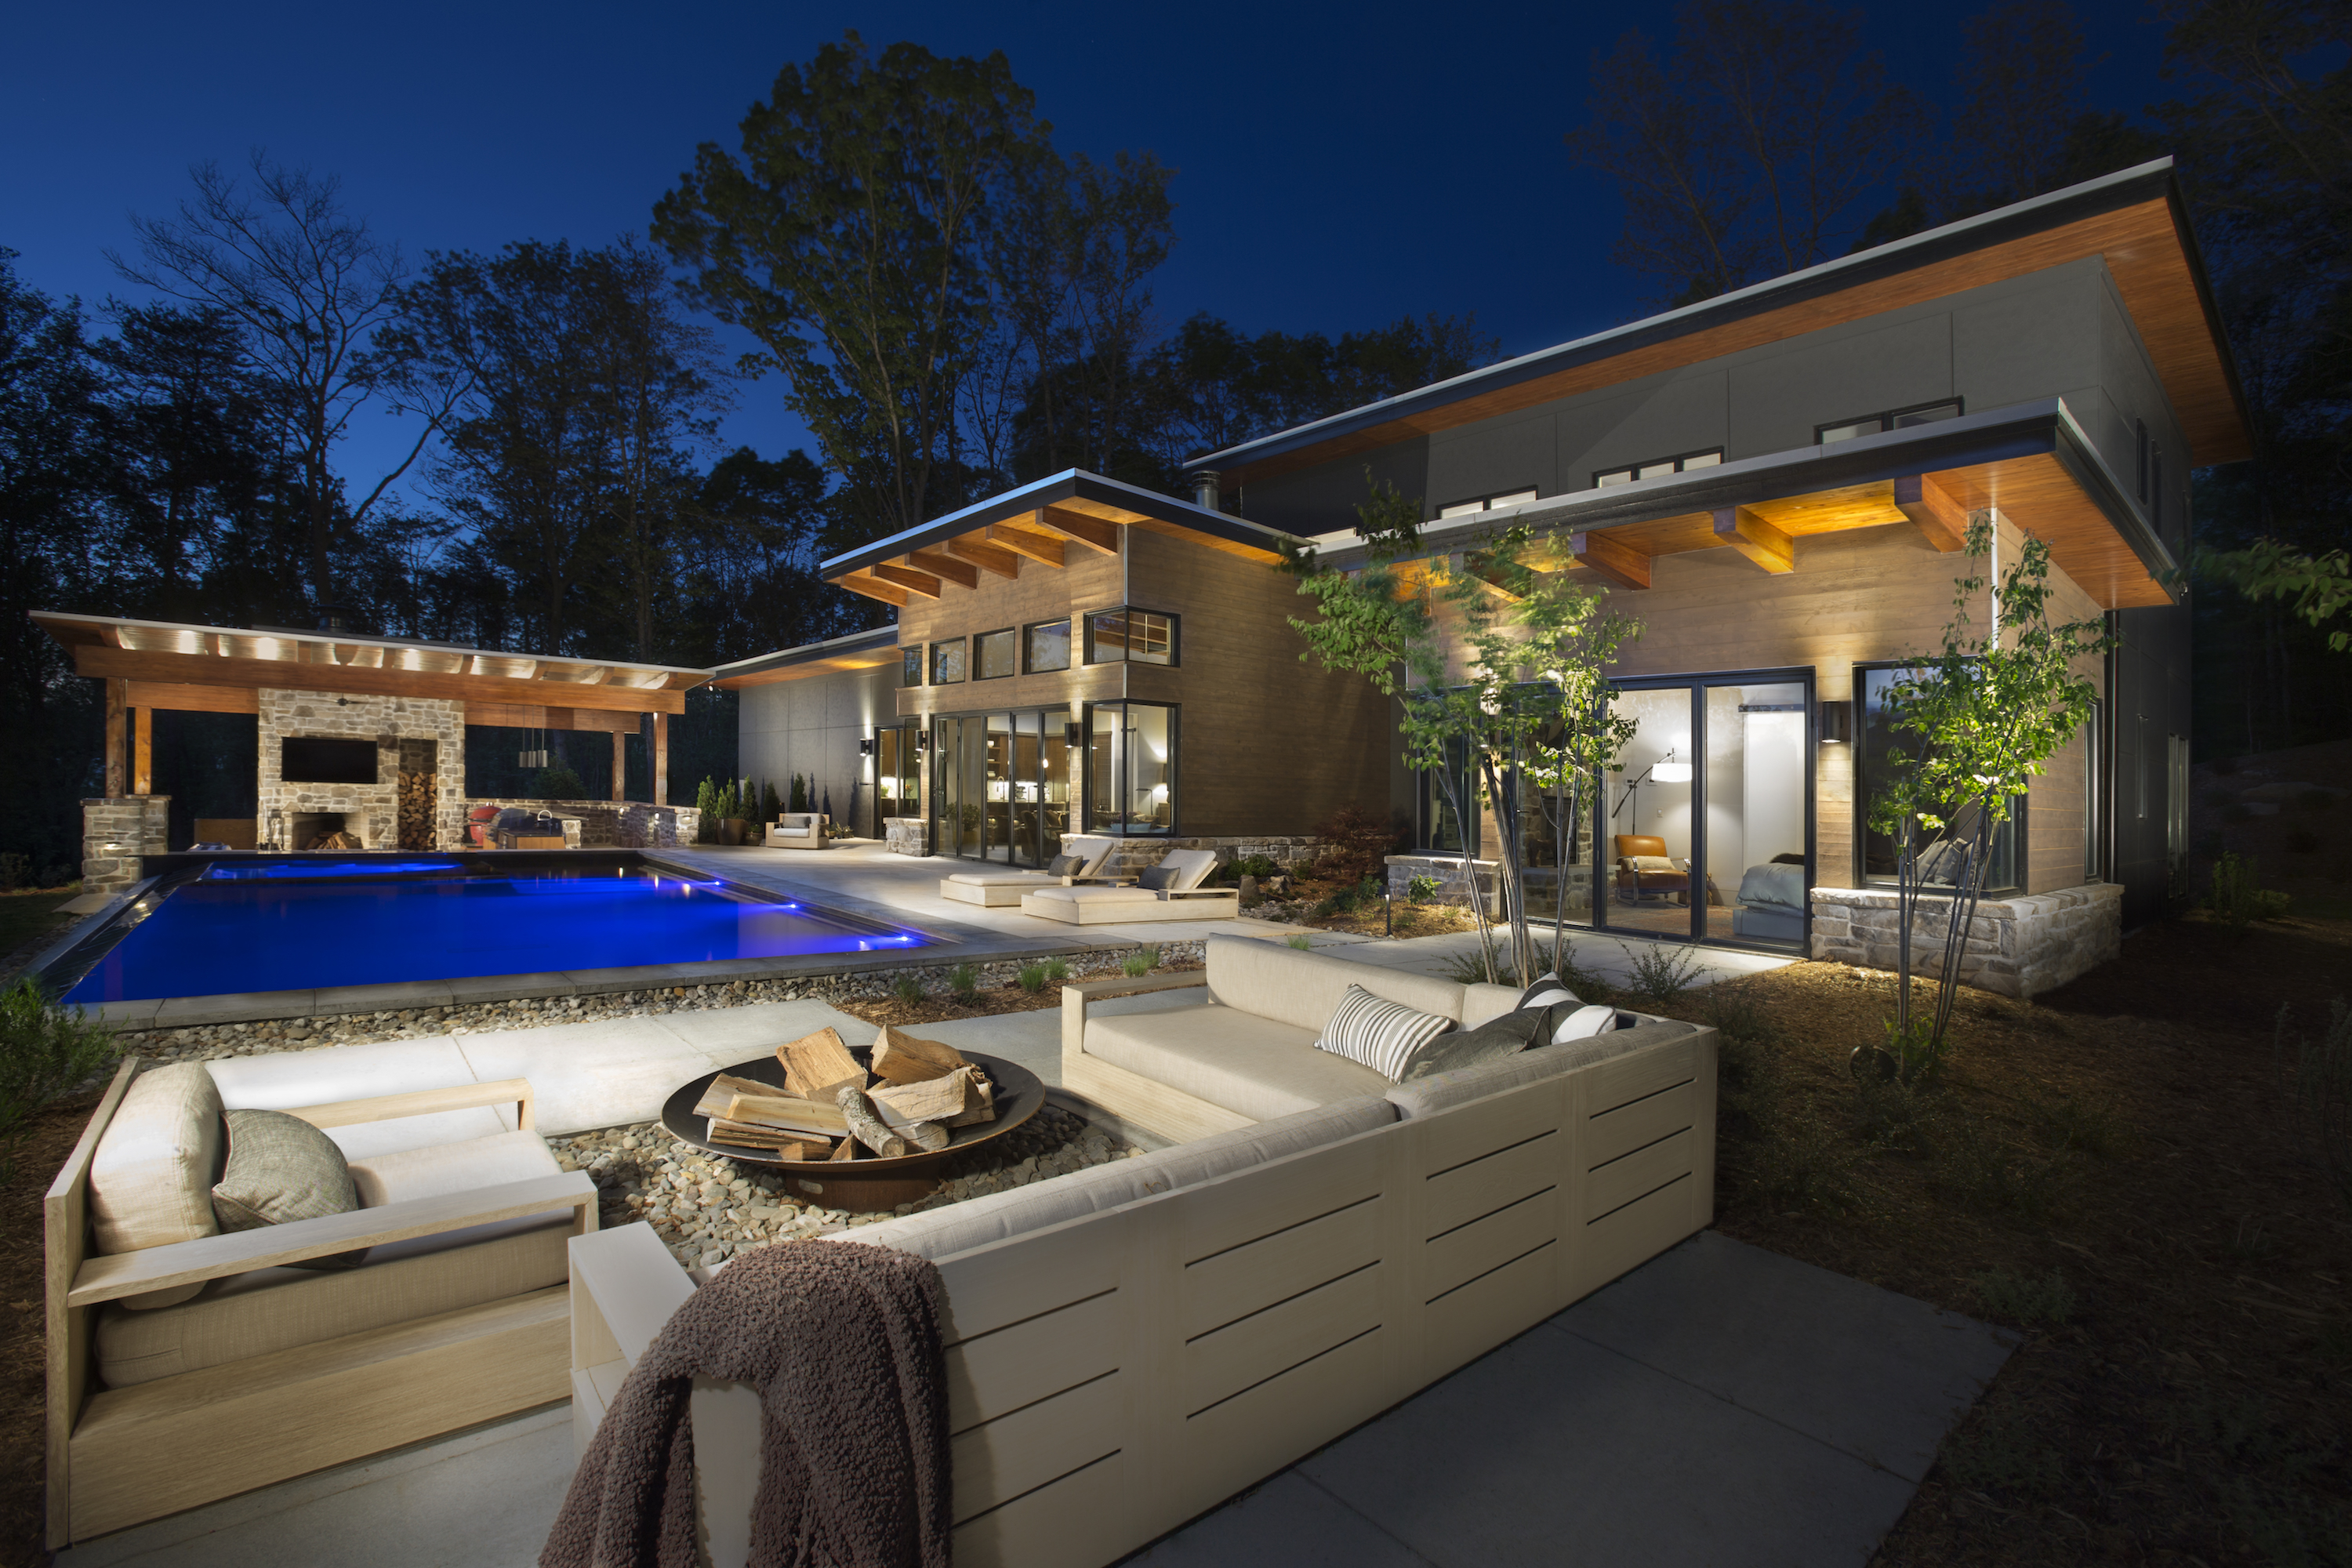 Outdoor Living Night time